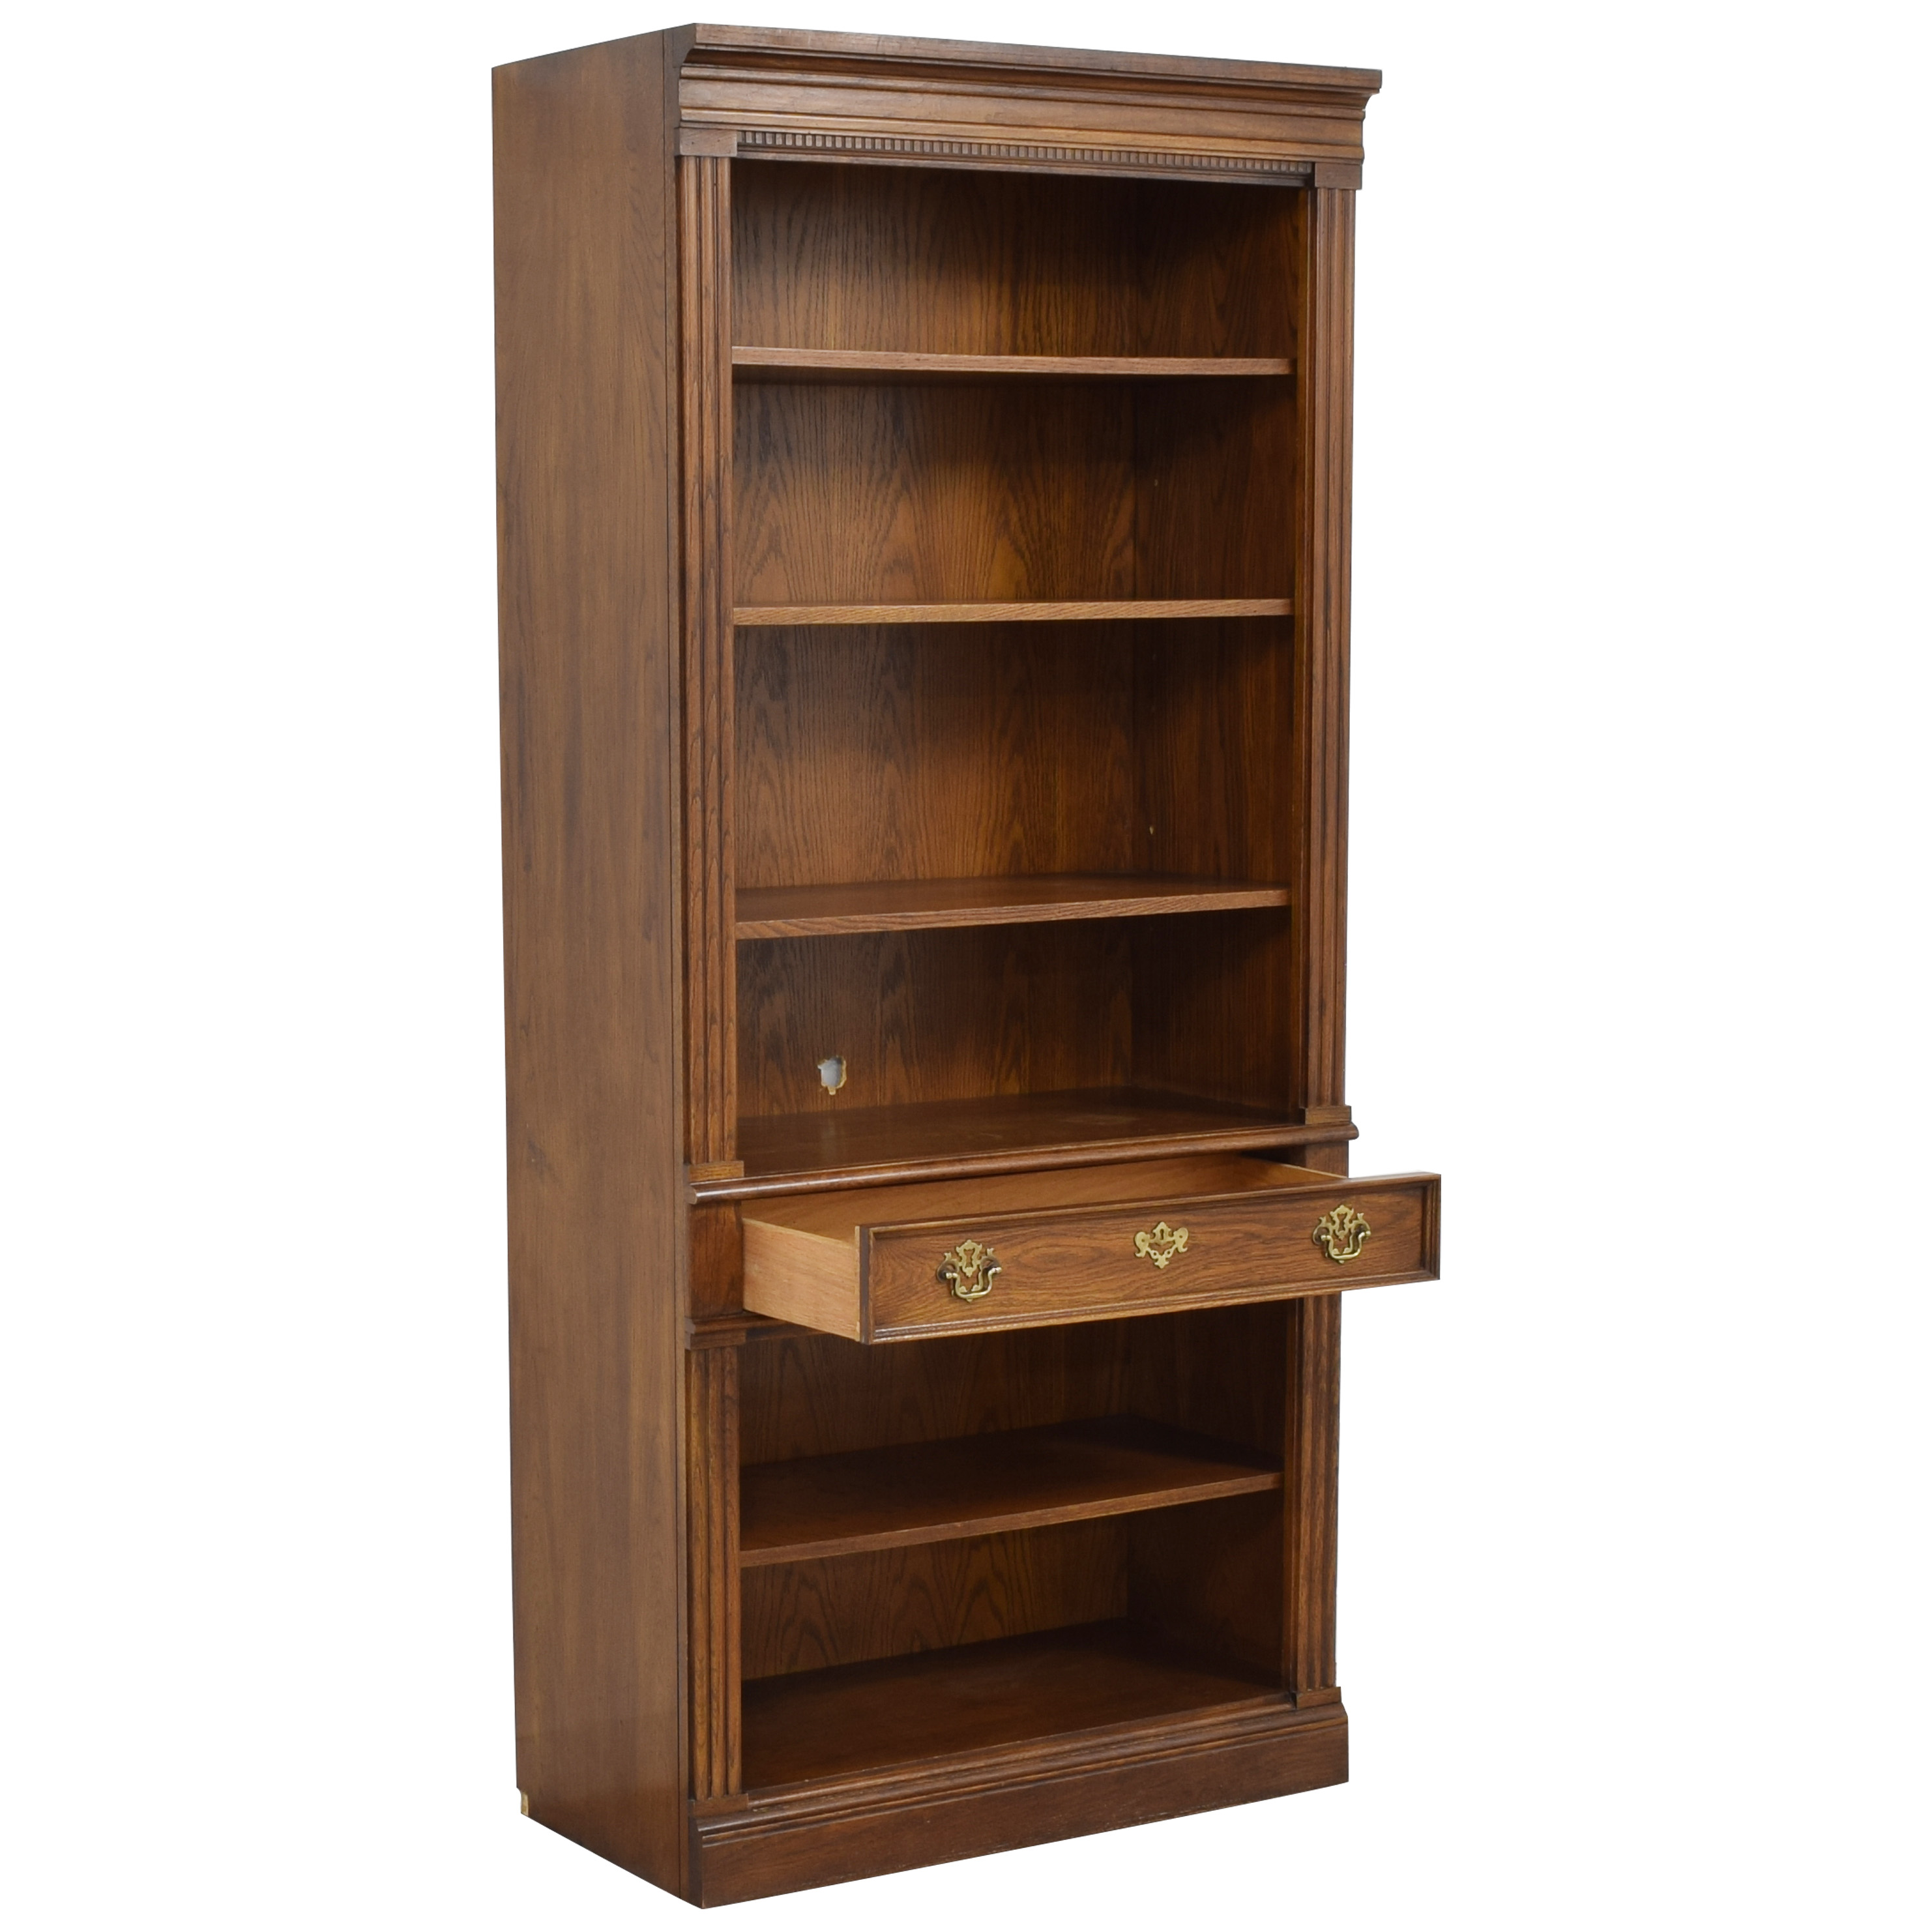 Thomasville Thomasville Bookself with Drawer pa